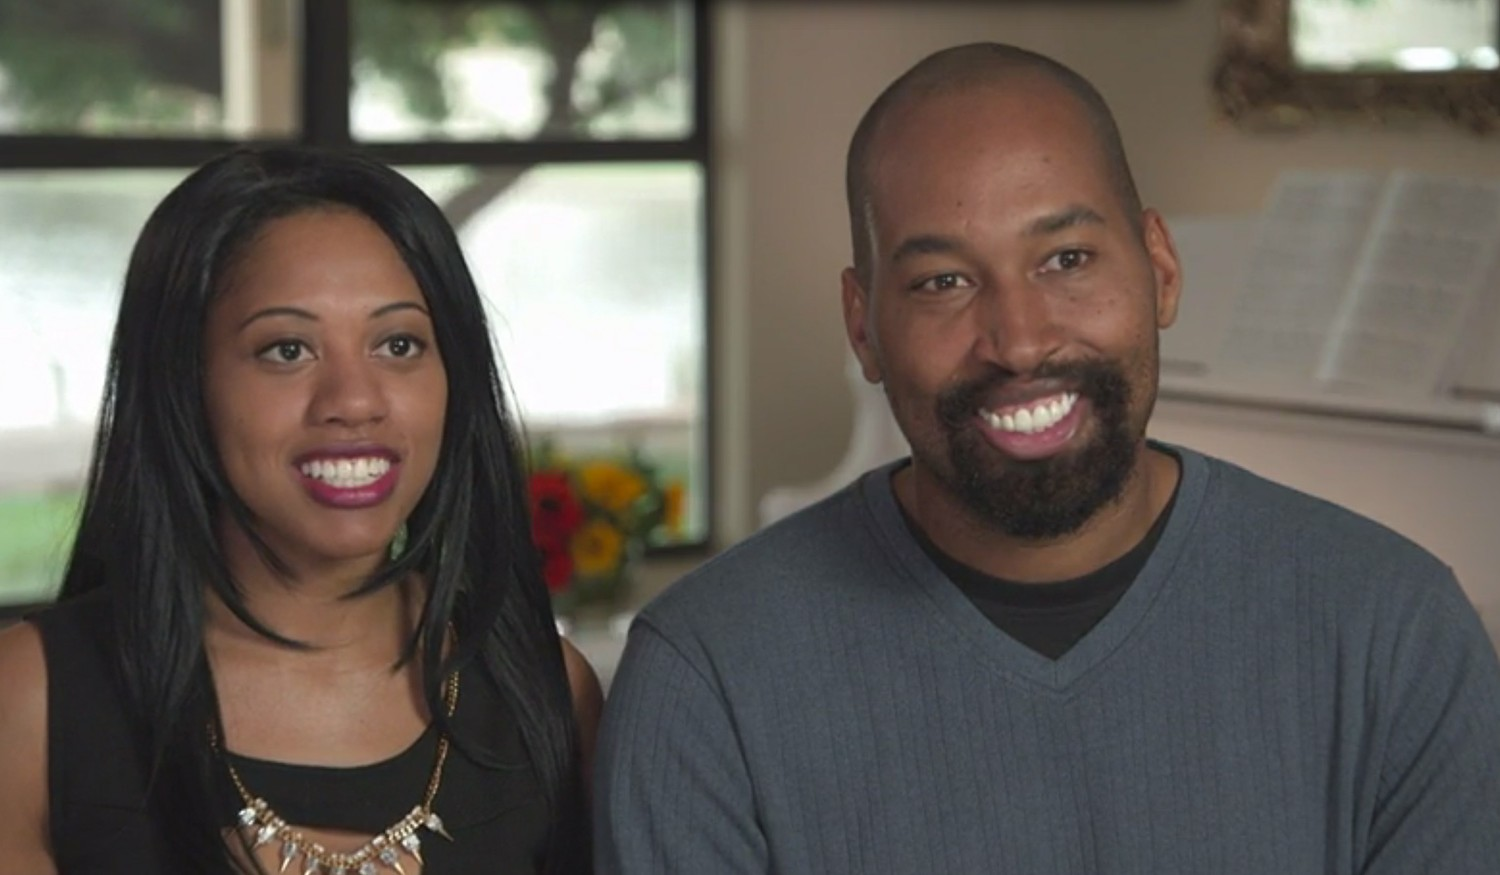 Newlyweds: The First Year's Adonis and Erica Gladney